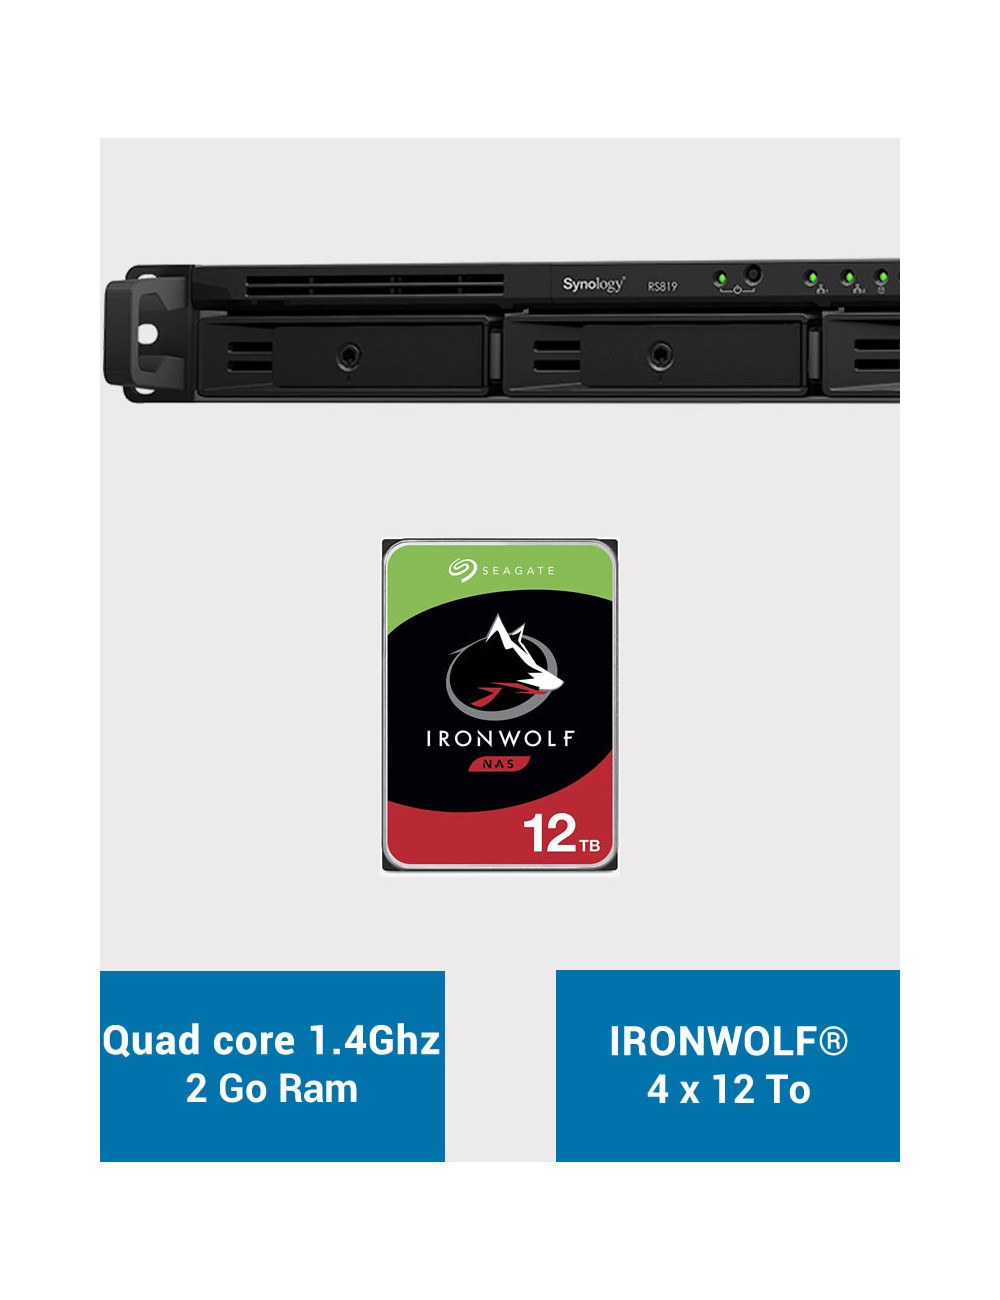 Synology RS819 NAS Server IRONWOLF 48TB (4x12TB)